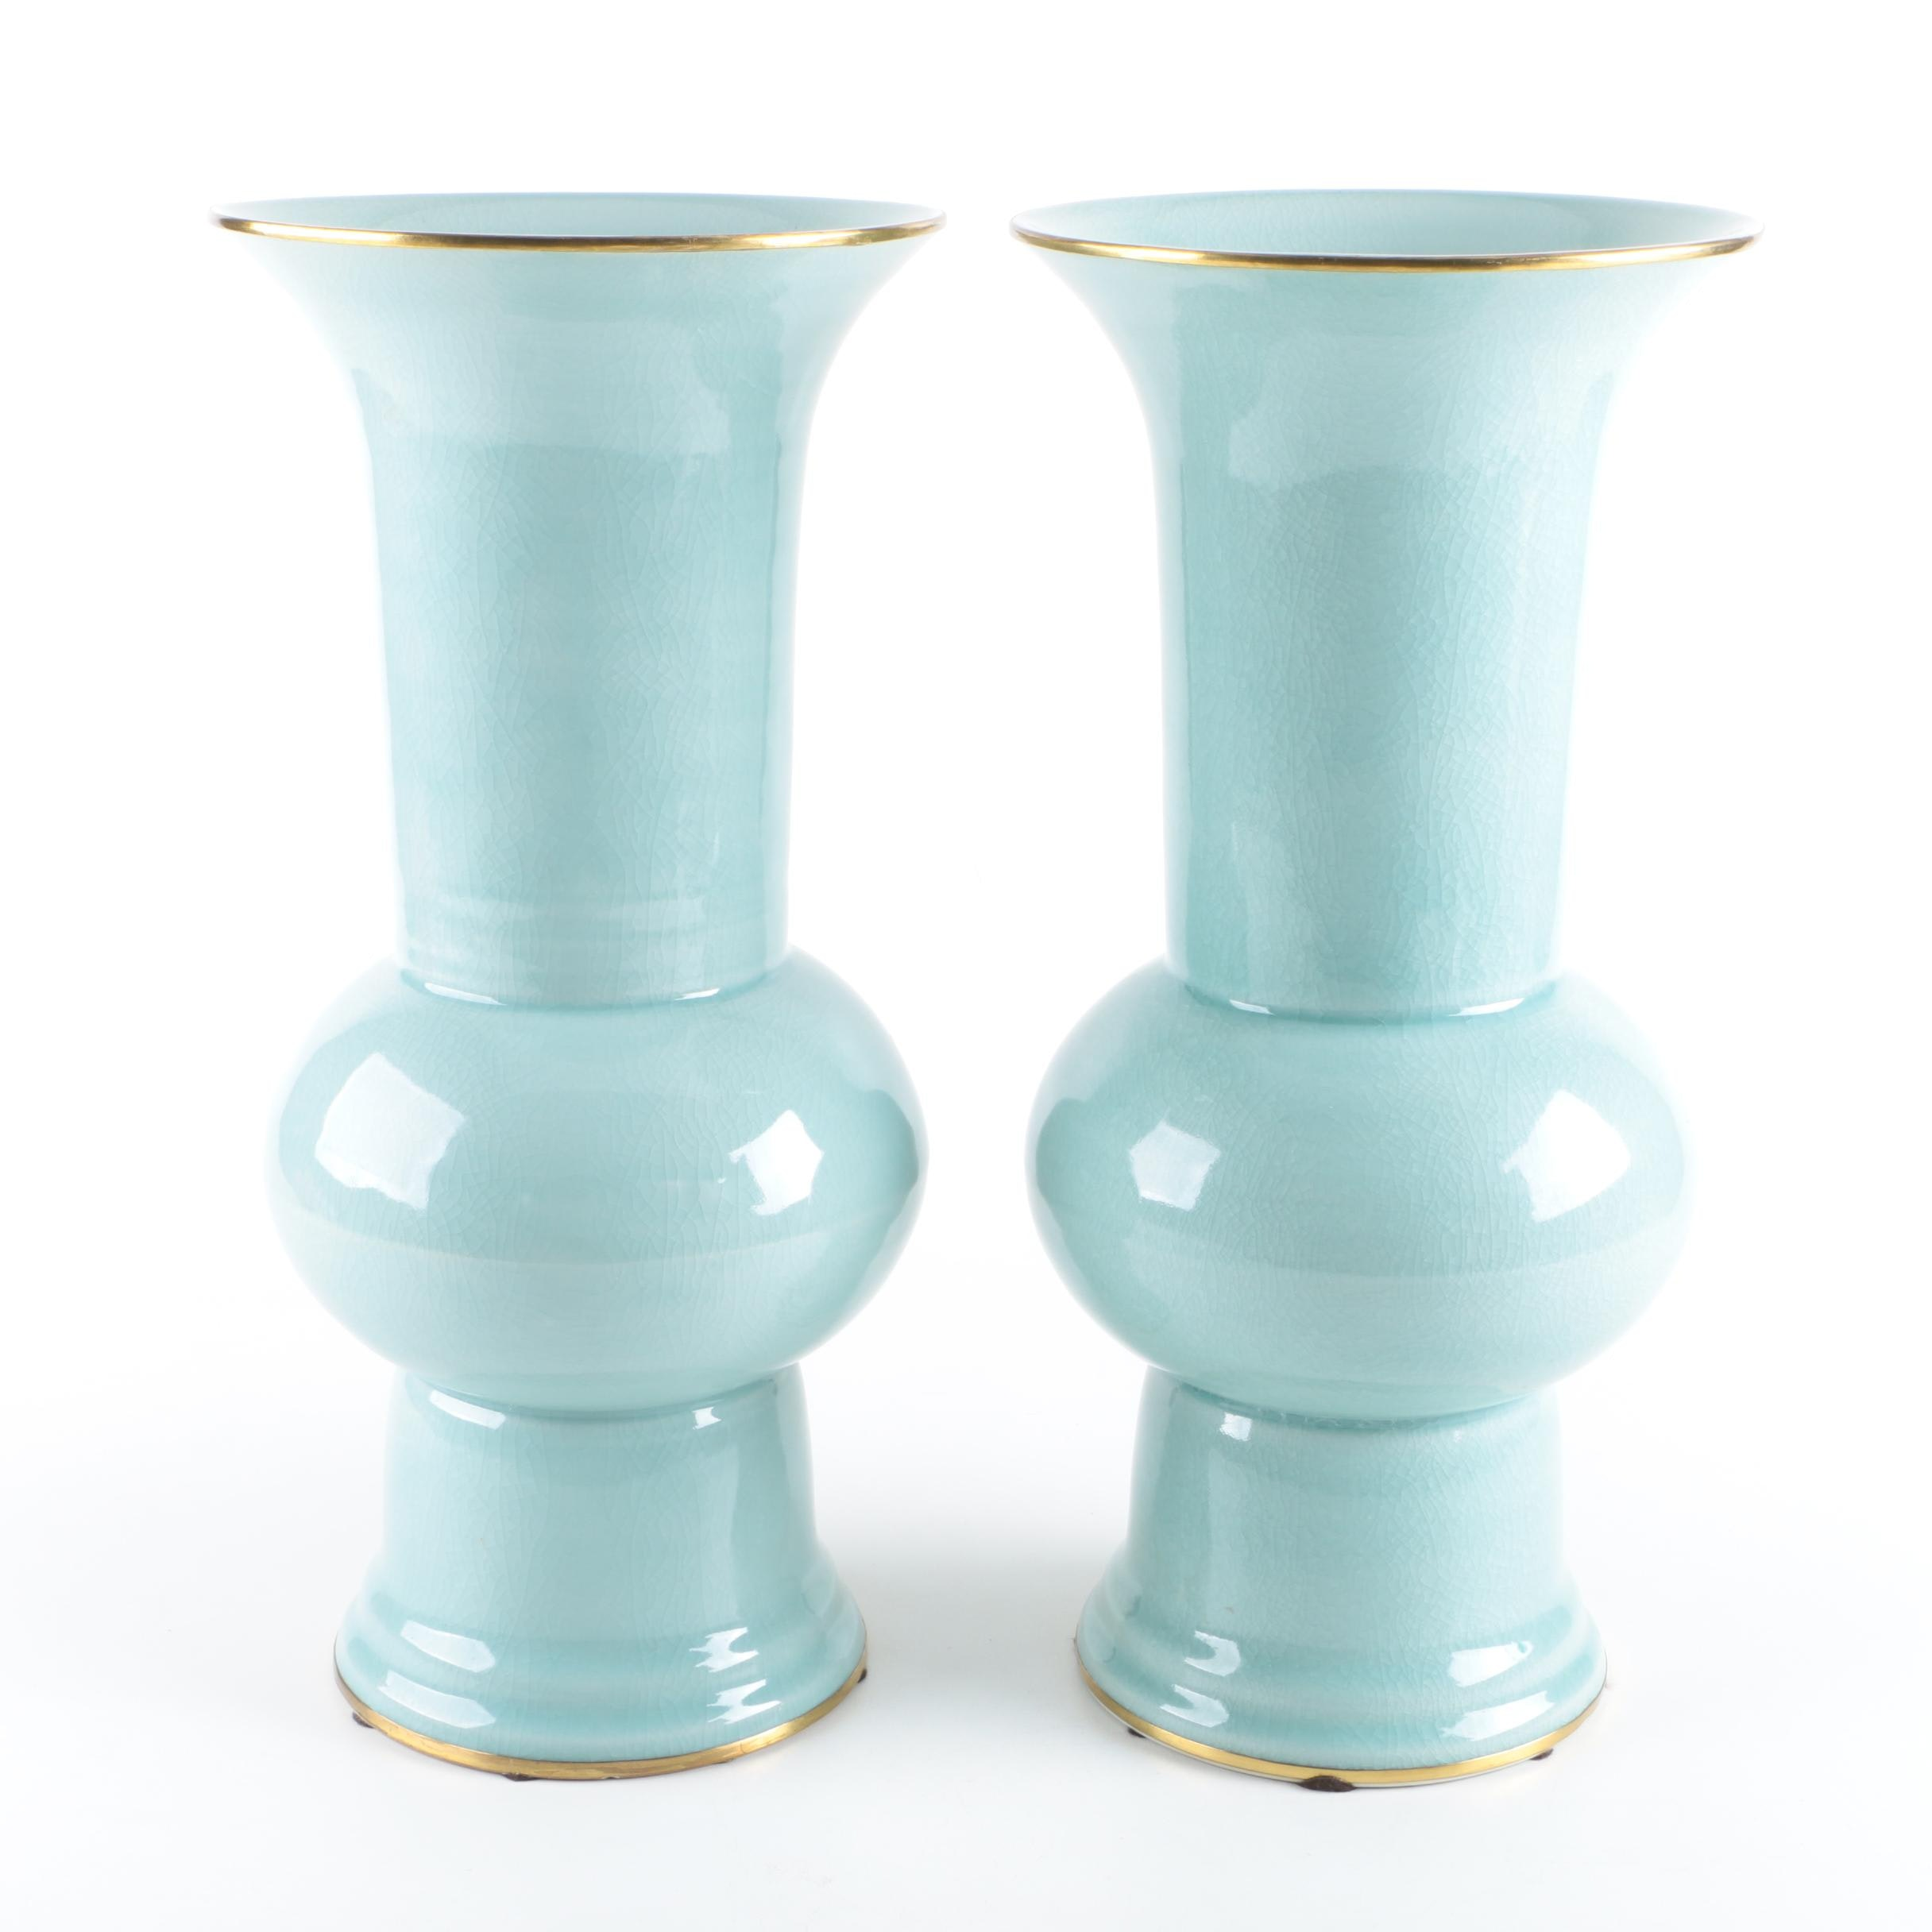 Pair of Hand-Made Maitland-Smith Ceramic Vases